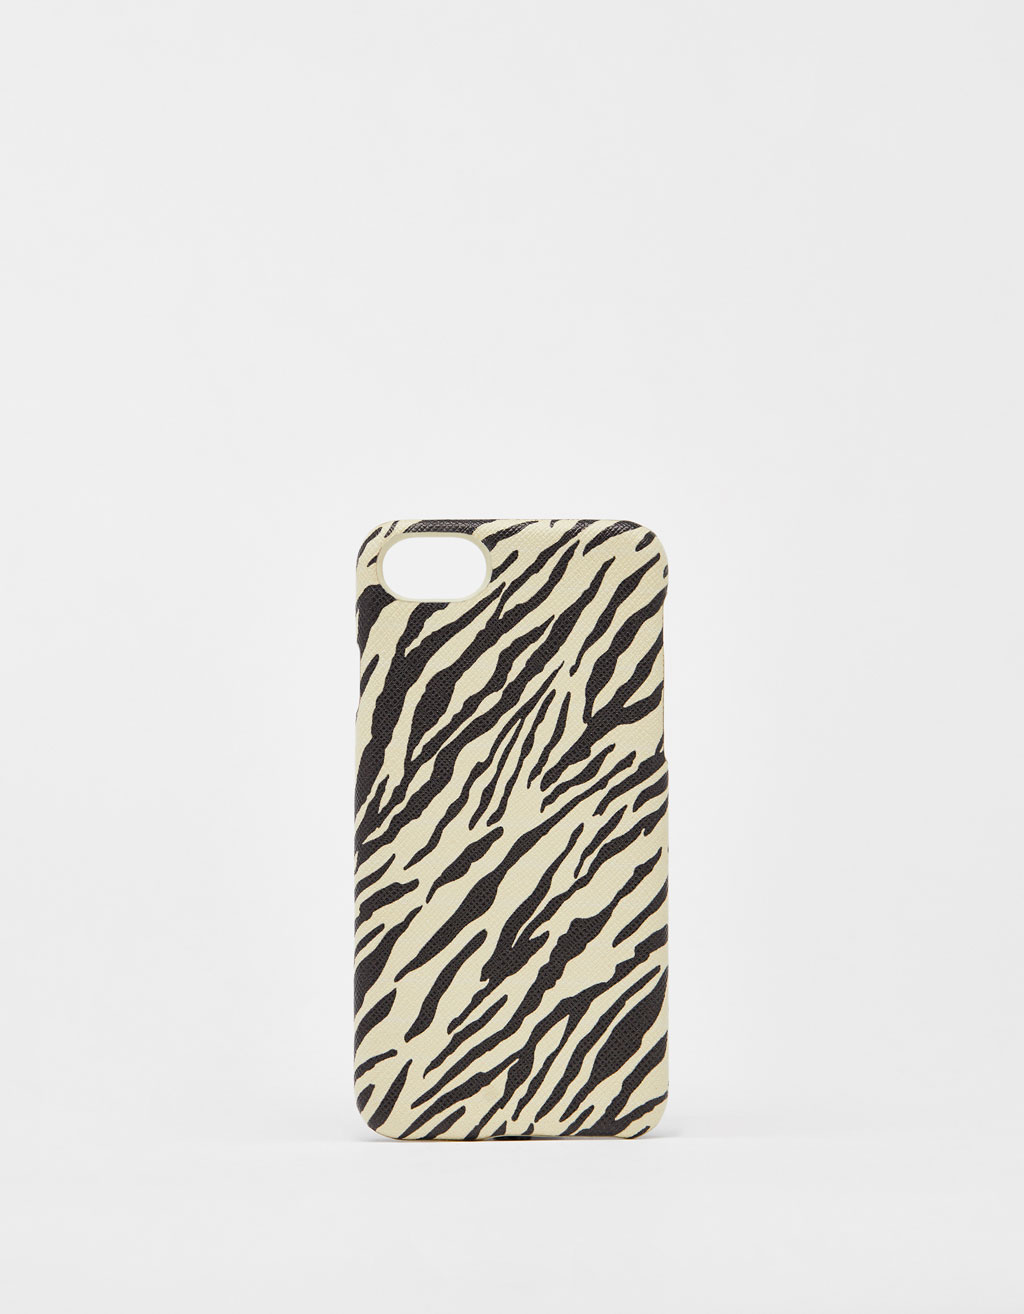 Zebra case for iPhone 6/6s/7/8